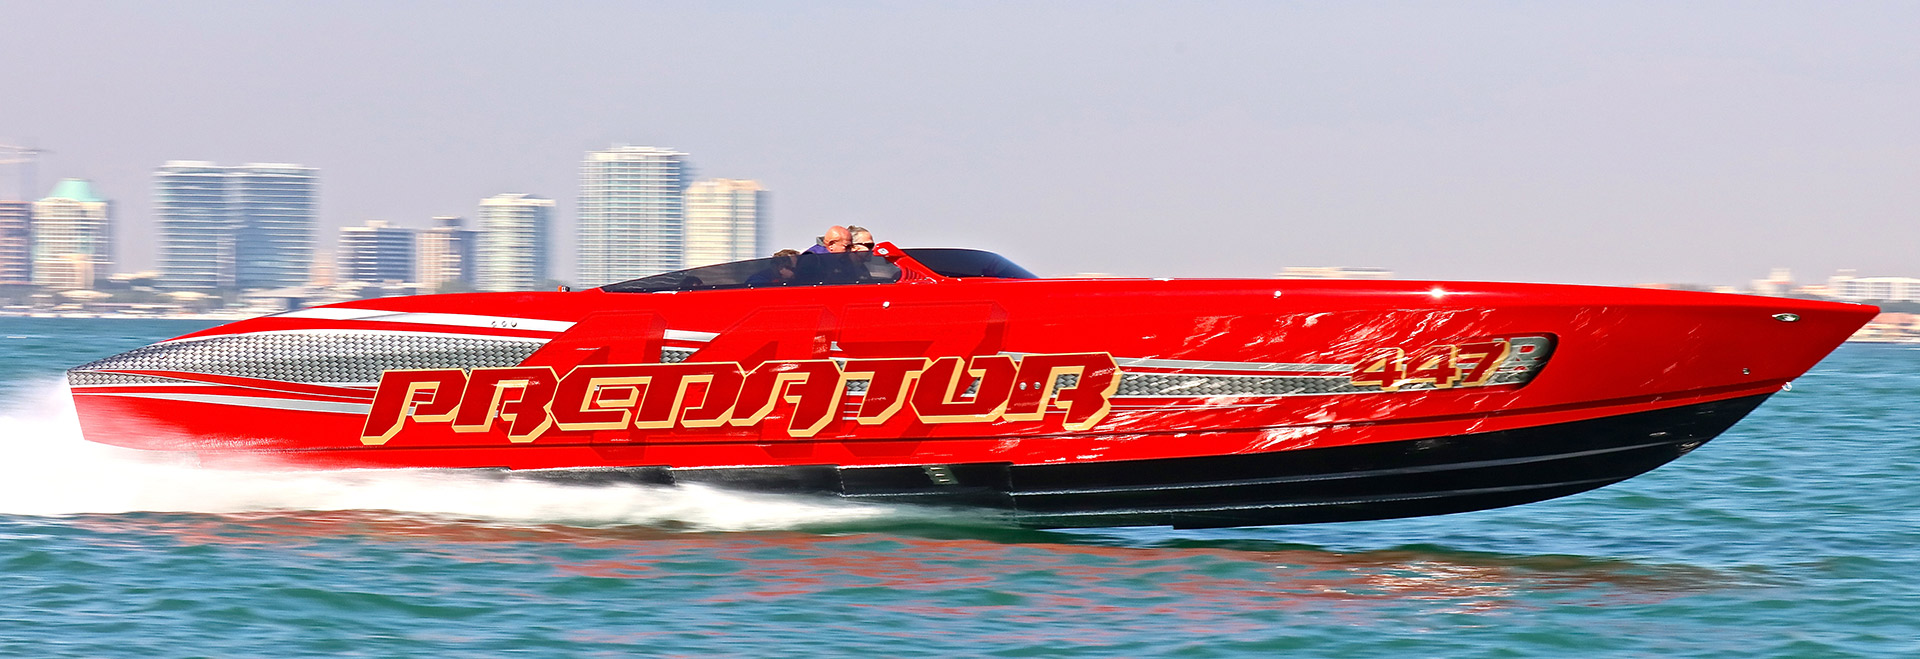 Following the Miami International Boat Show, Robertson Jr., took the 447-R  on the Florida Powerboat Club's Miami Boat Show Poker Run.